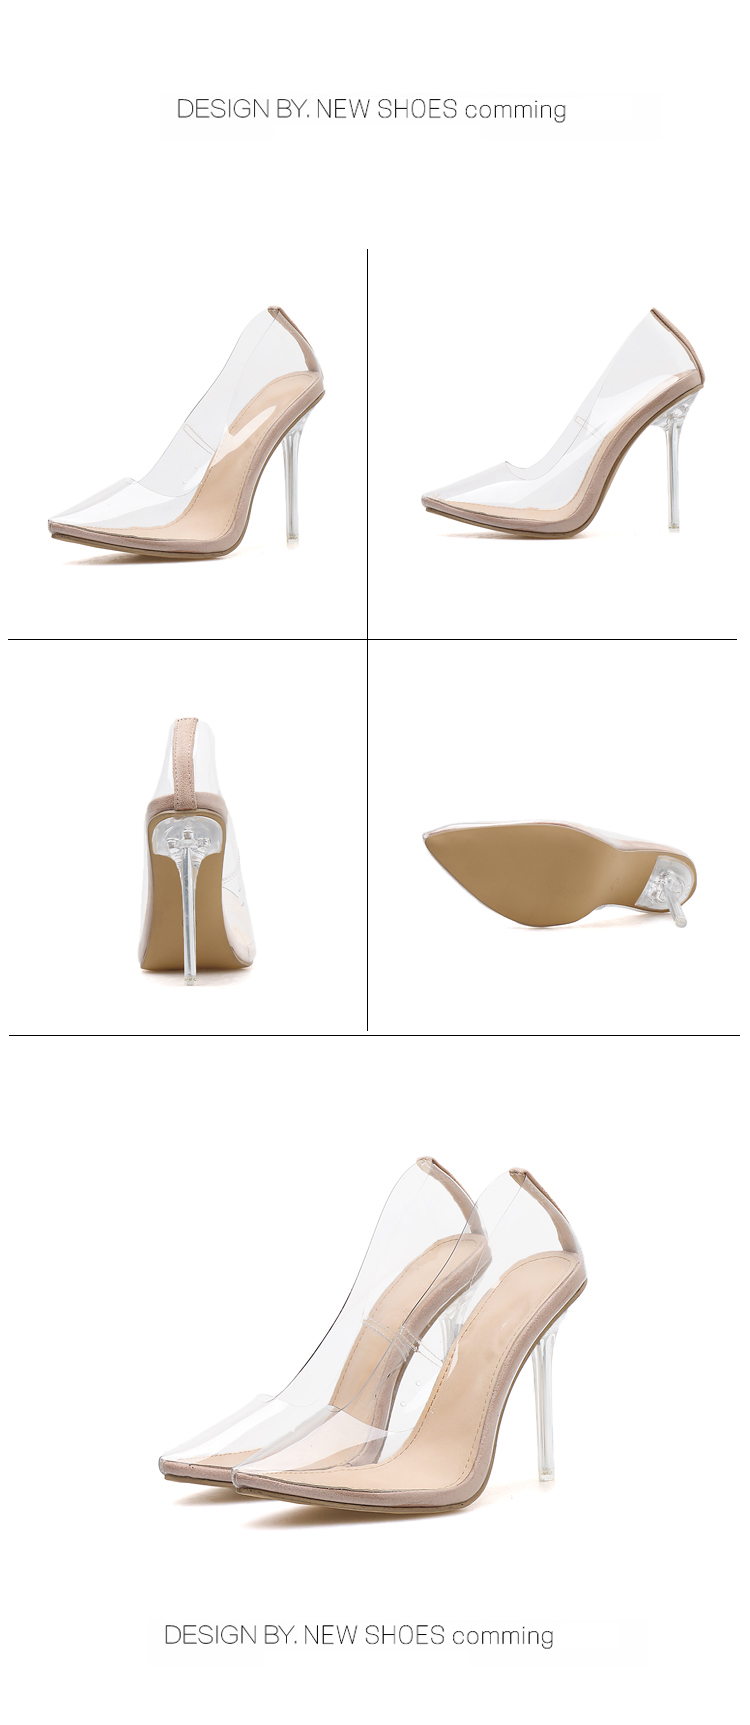 HTB1e14AQrvpK1RjSZFqq6AXUVXaD Aneikeh 2020 Concise Fashion PVC Woman Transparent Sandals Thin High Heels Shoes Pointed Toe Pumps Slip On Solid Apricot 35-42